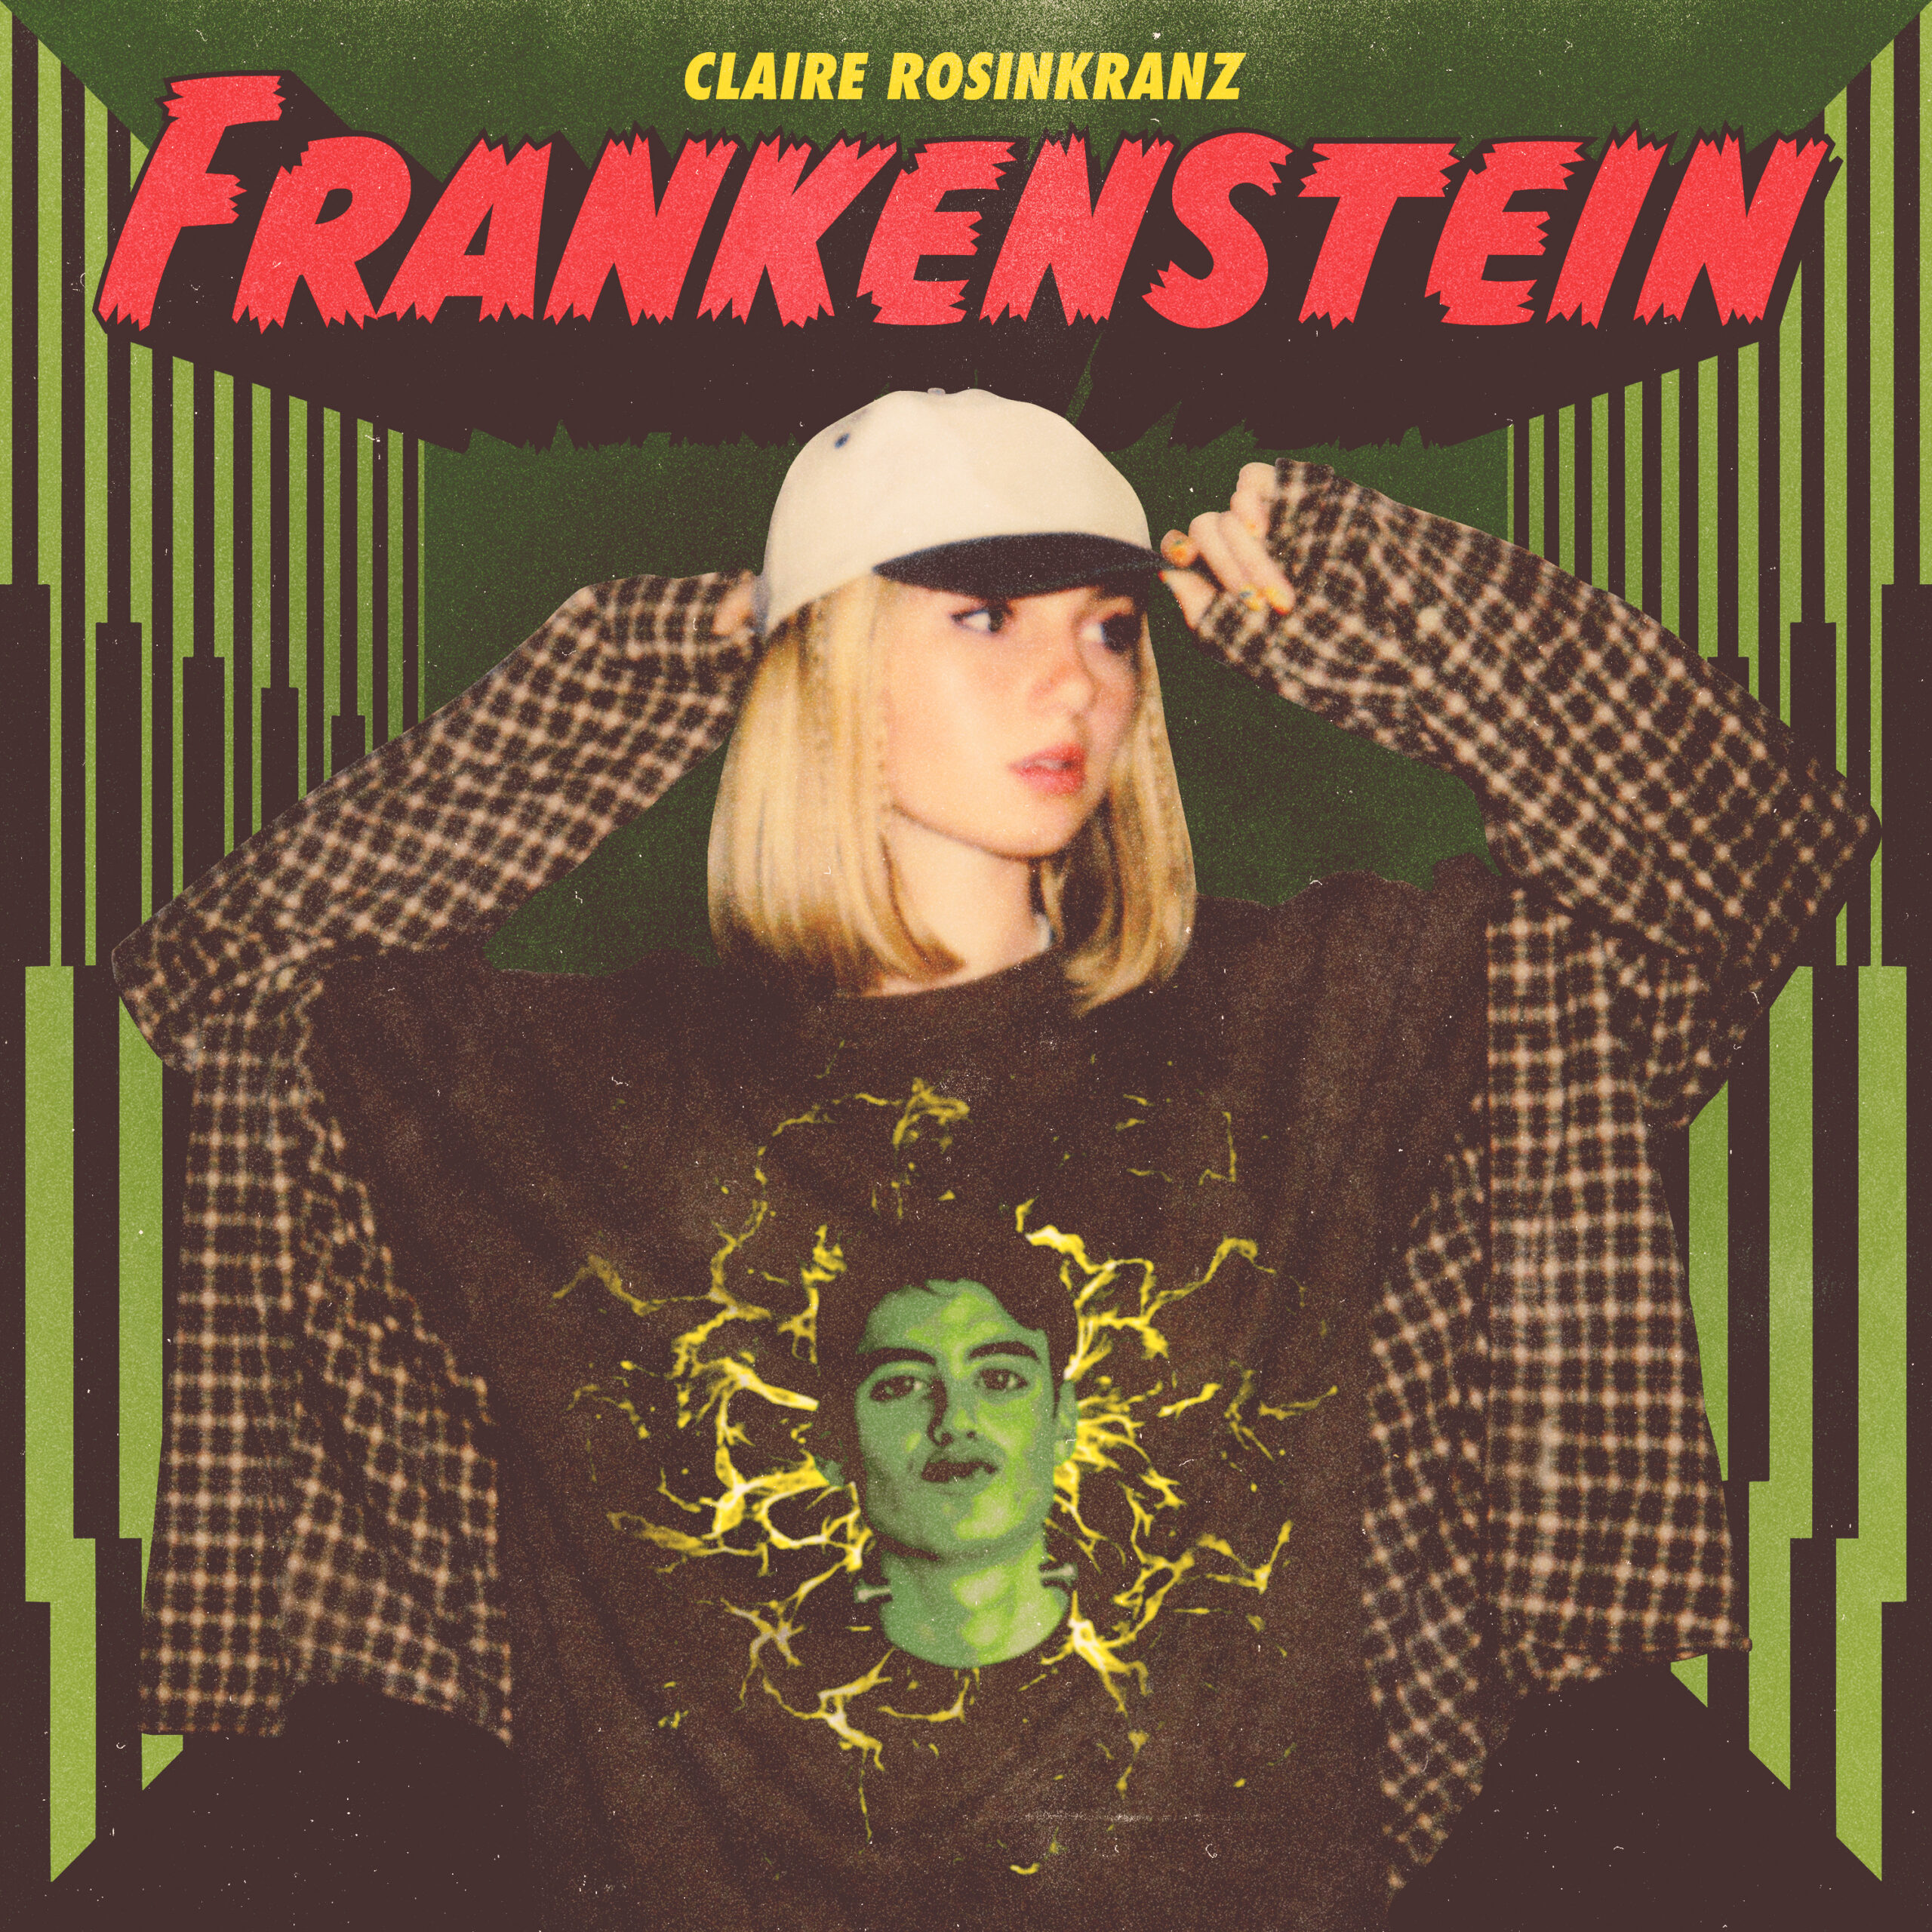 Frankenstein Artwork via Republic Records for use by 360 Magazine